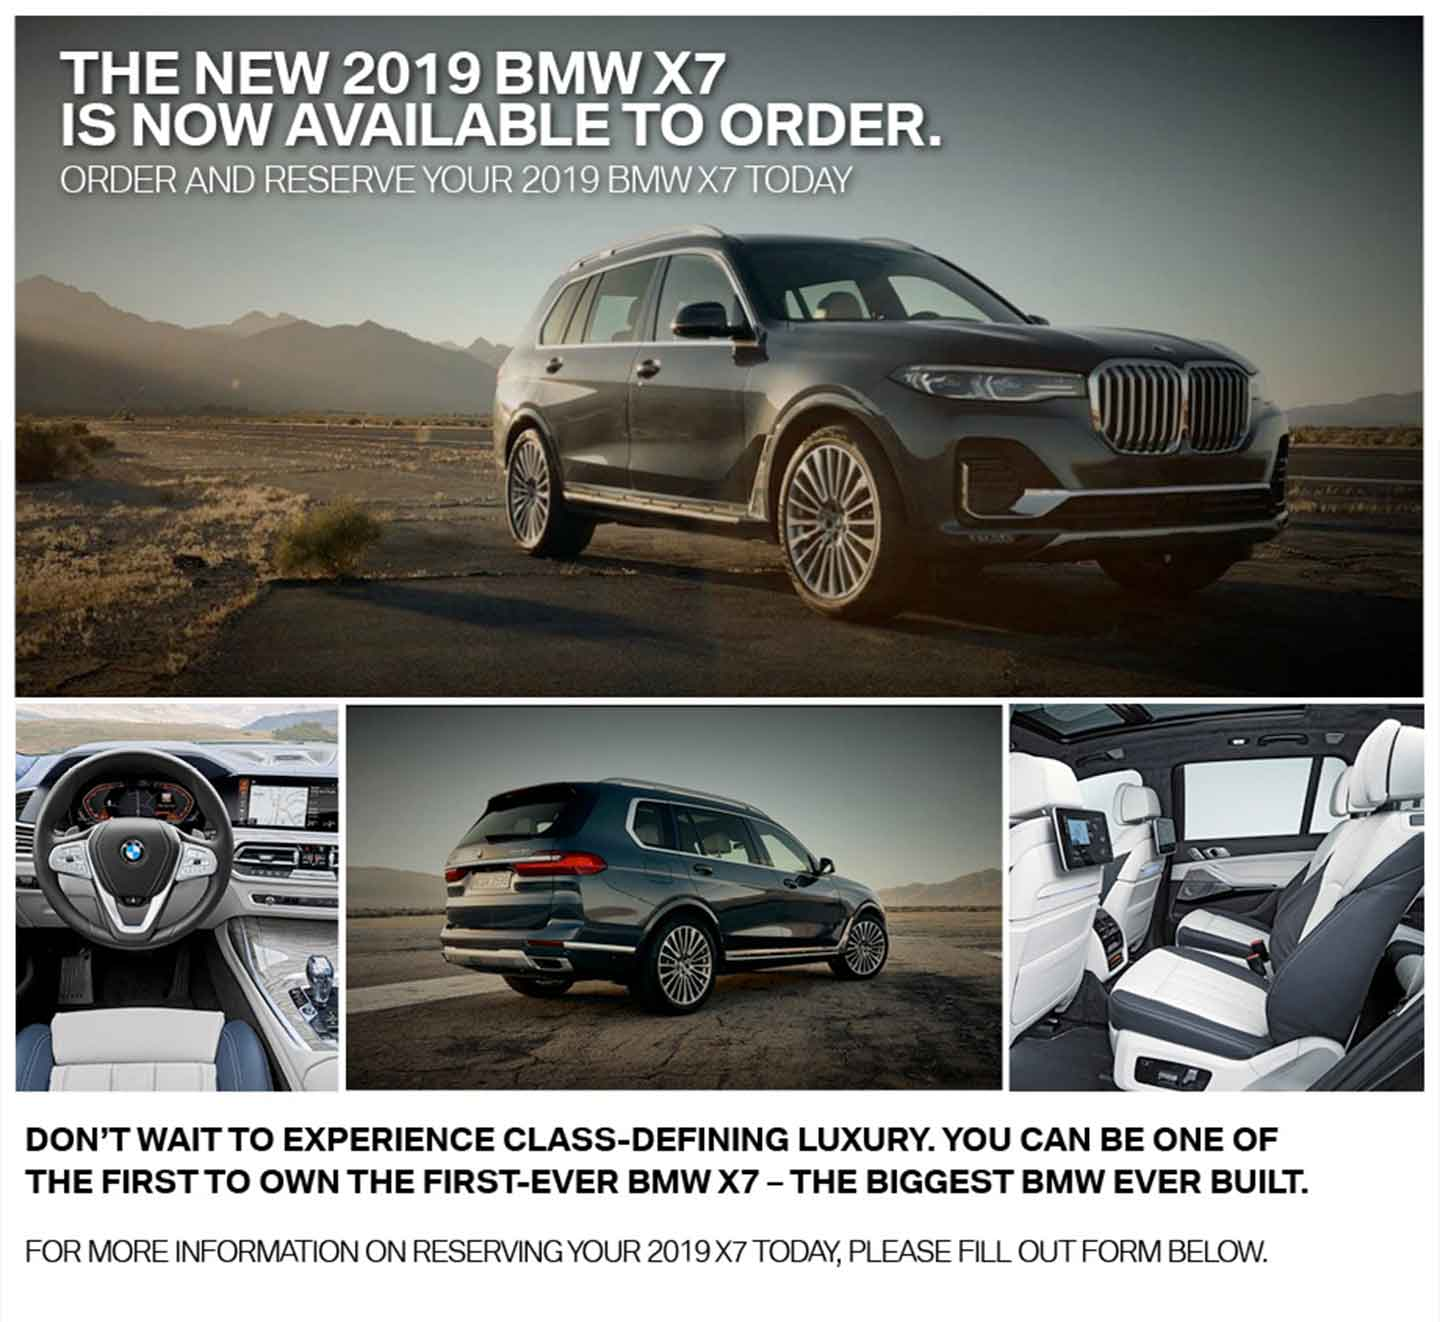 The New 2019 BMW X7 is Now Available to Order